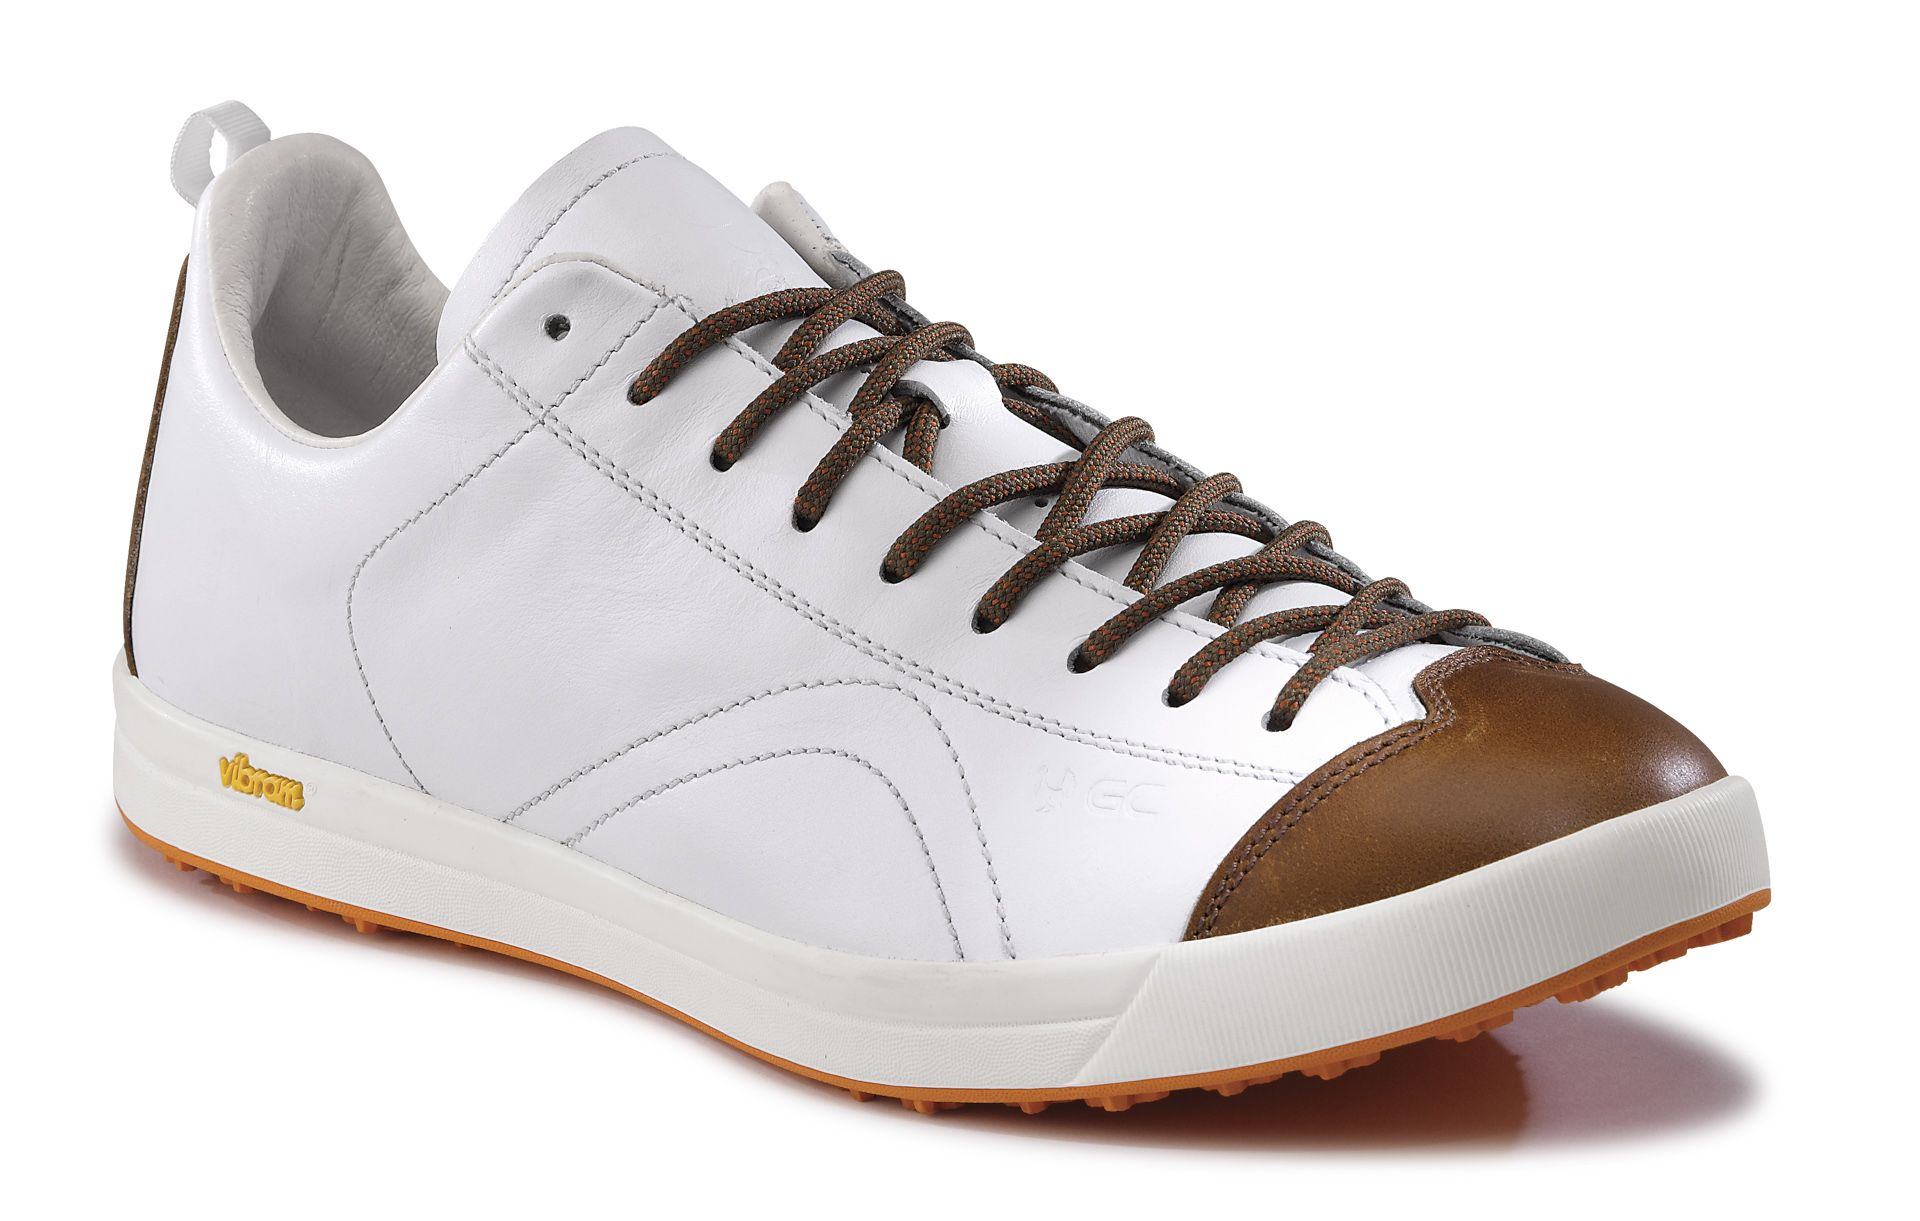 GC Driver, our top of the line #golf shoes, with premium full grain leather upper, leather lining and insole, and specific Vibram® outsole. Enjoy!